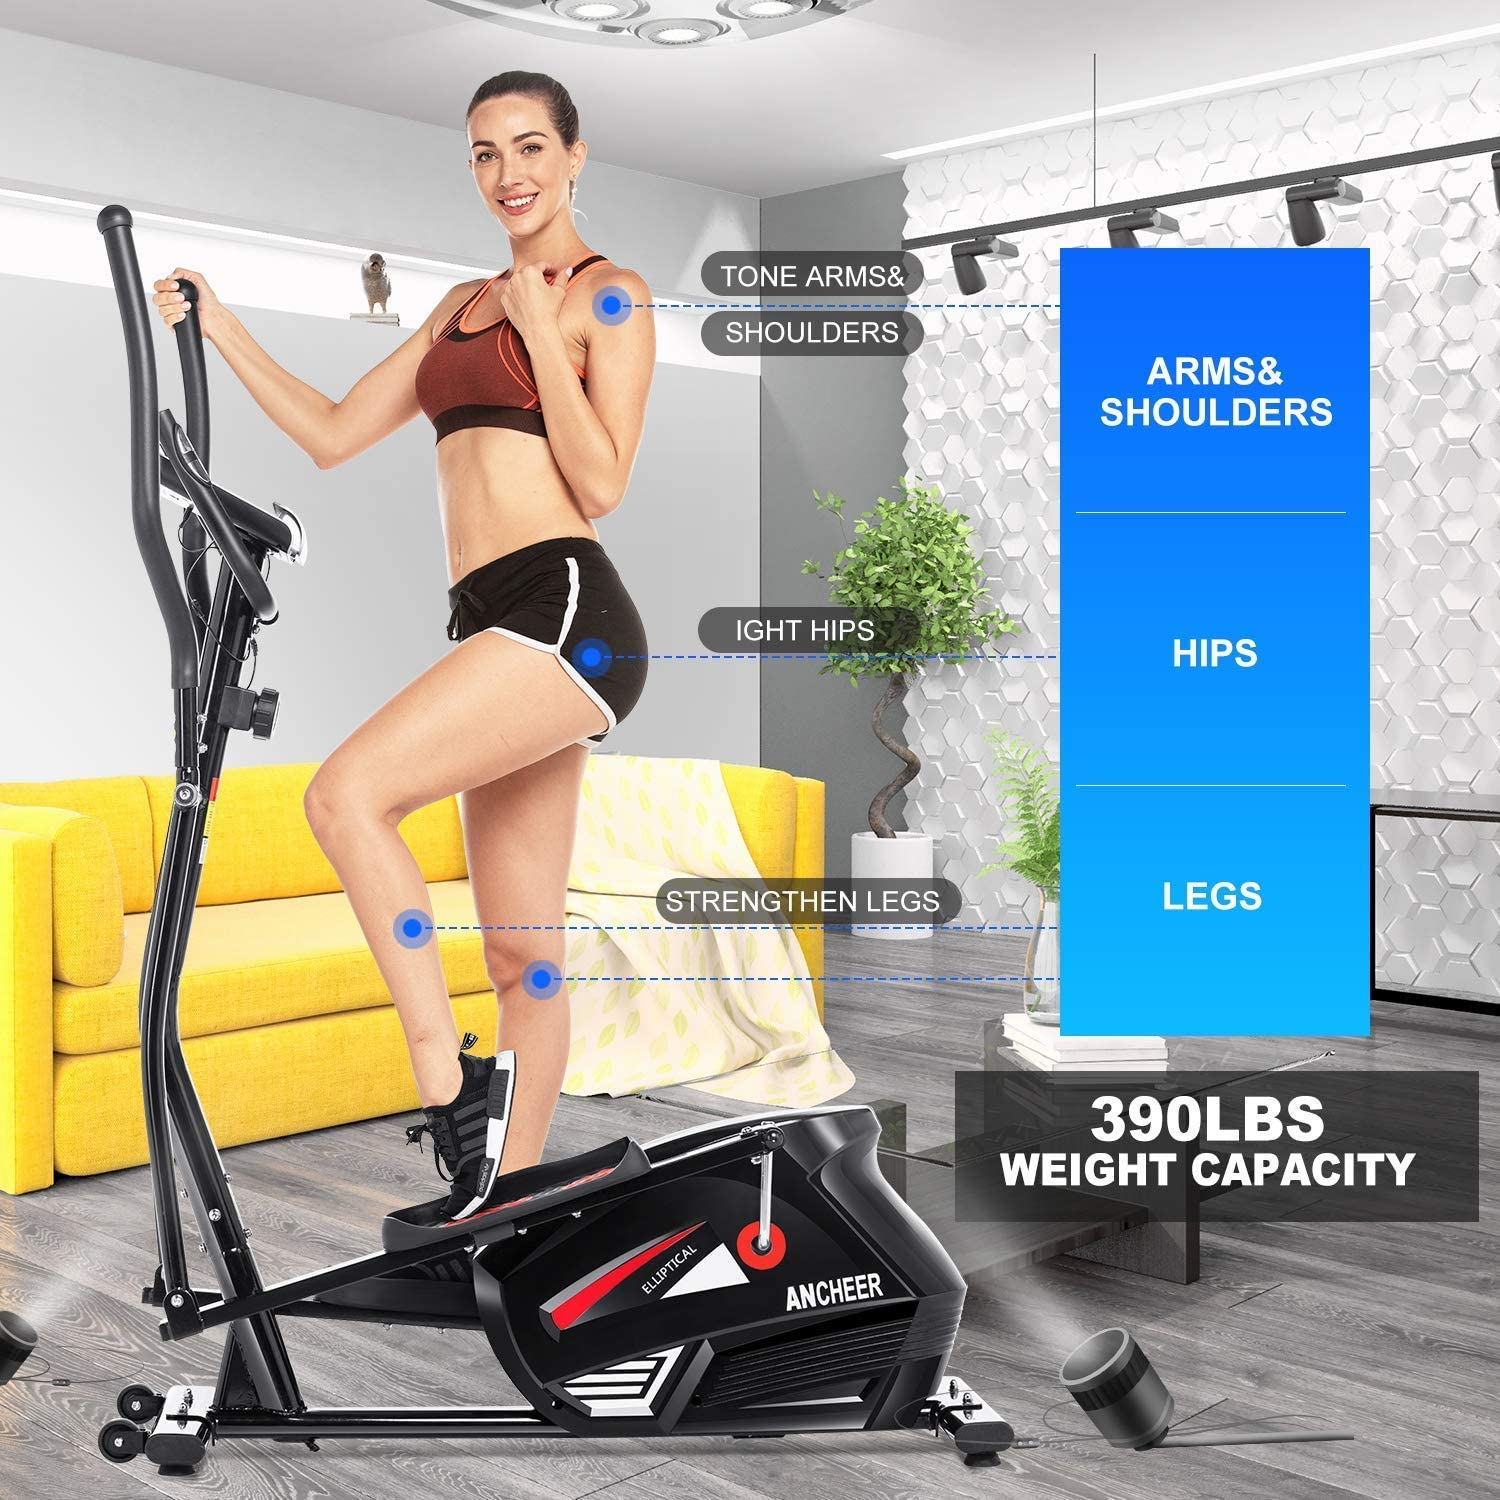 Indoor Mini Pedal Exerciser Electric Desk Elliptical Machine Trainer with Built in Display Monitor Quiet /& Compact ANCHEER Under Desk Cycle